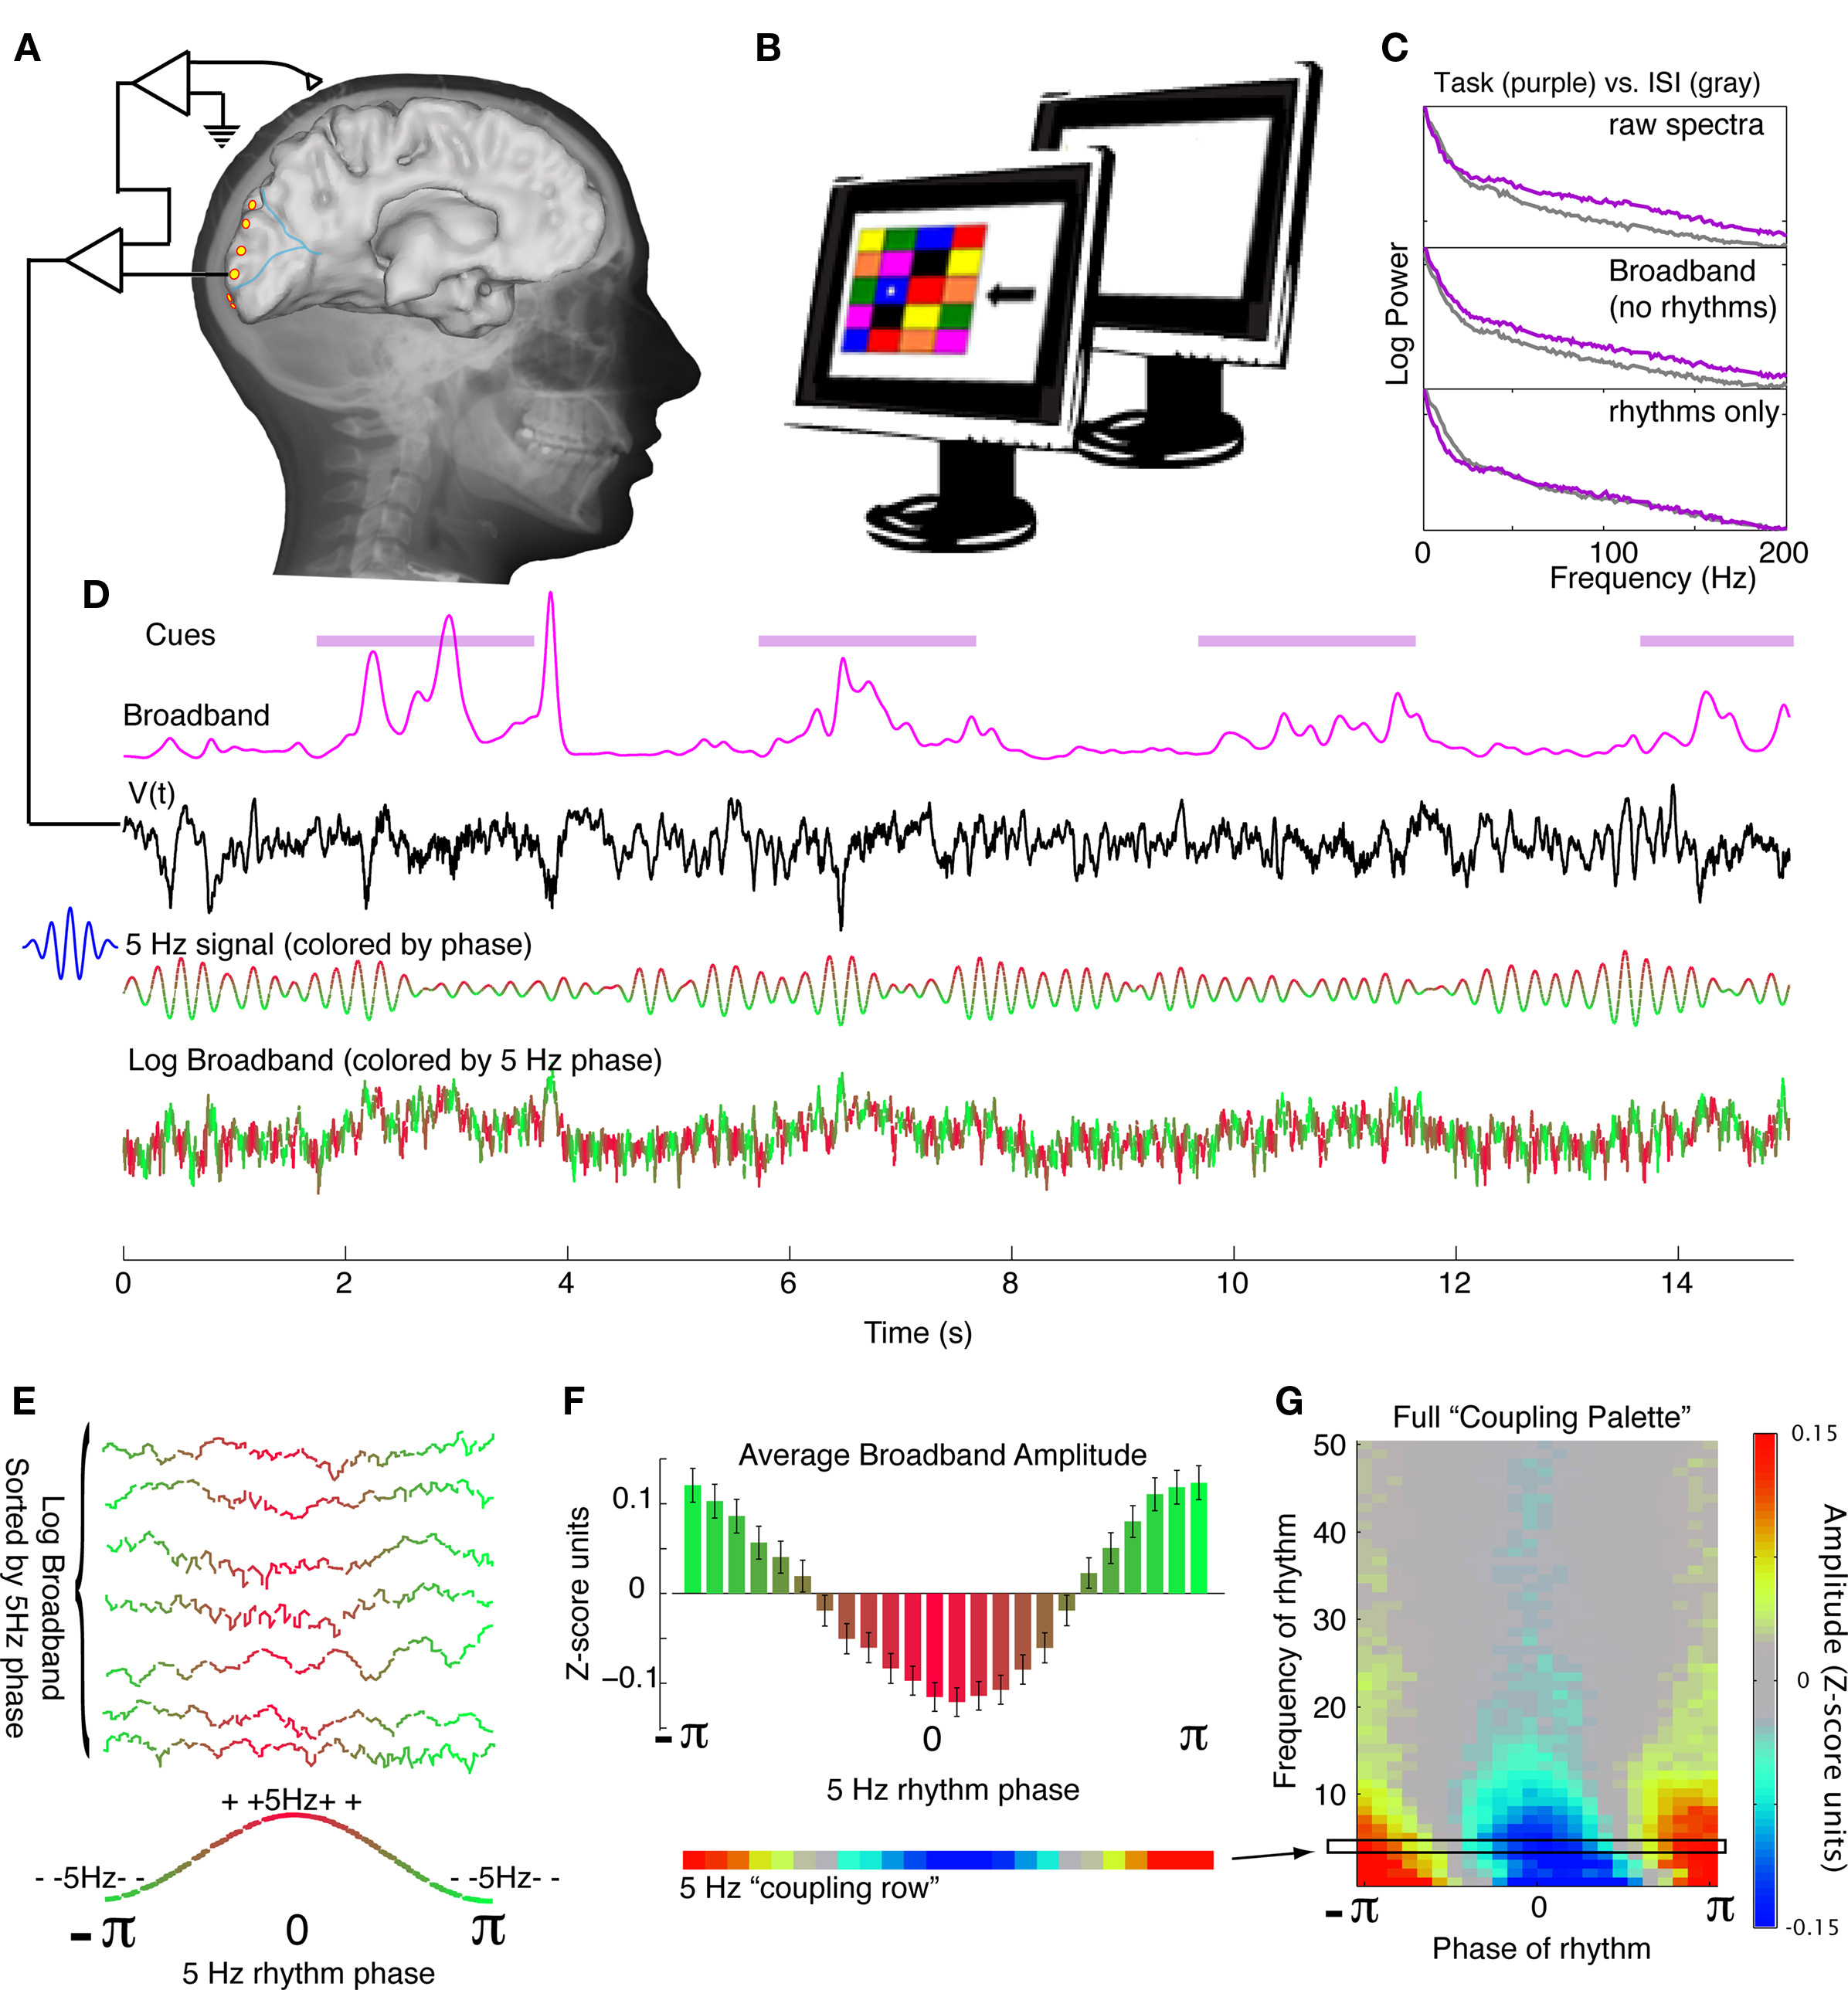 ANALYSIS OF EPILEPTIC SEIZURE DETECTION METHODS BASED ON PARAMETER ESTIMATION, POWER SPECTRUM DENSITY AND MORLET WAVELET TRANSFORM